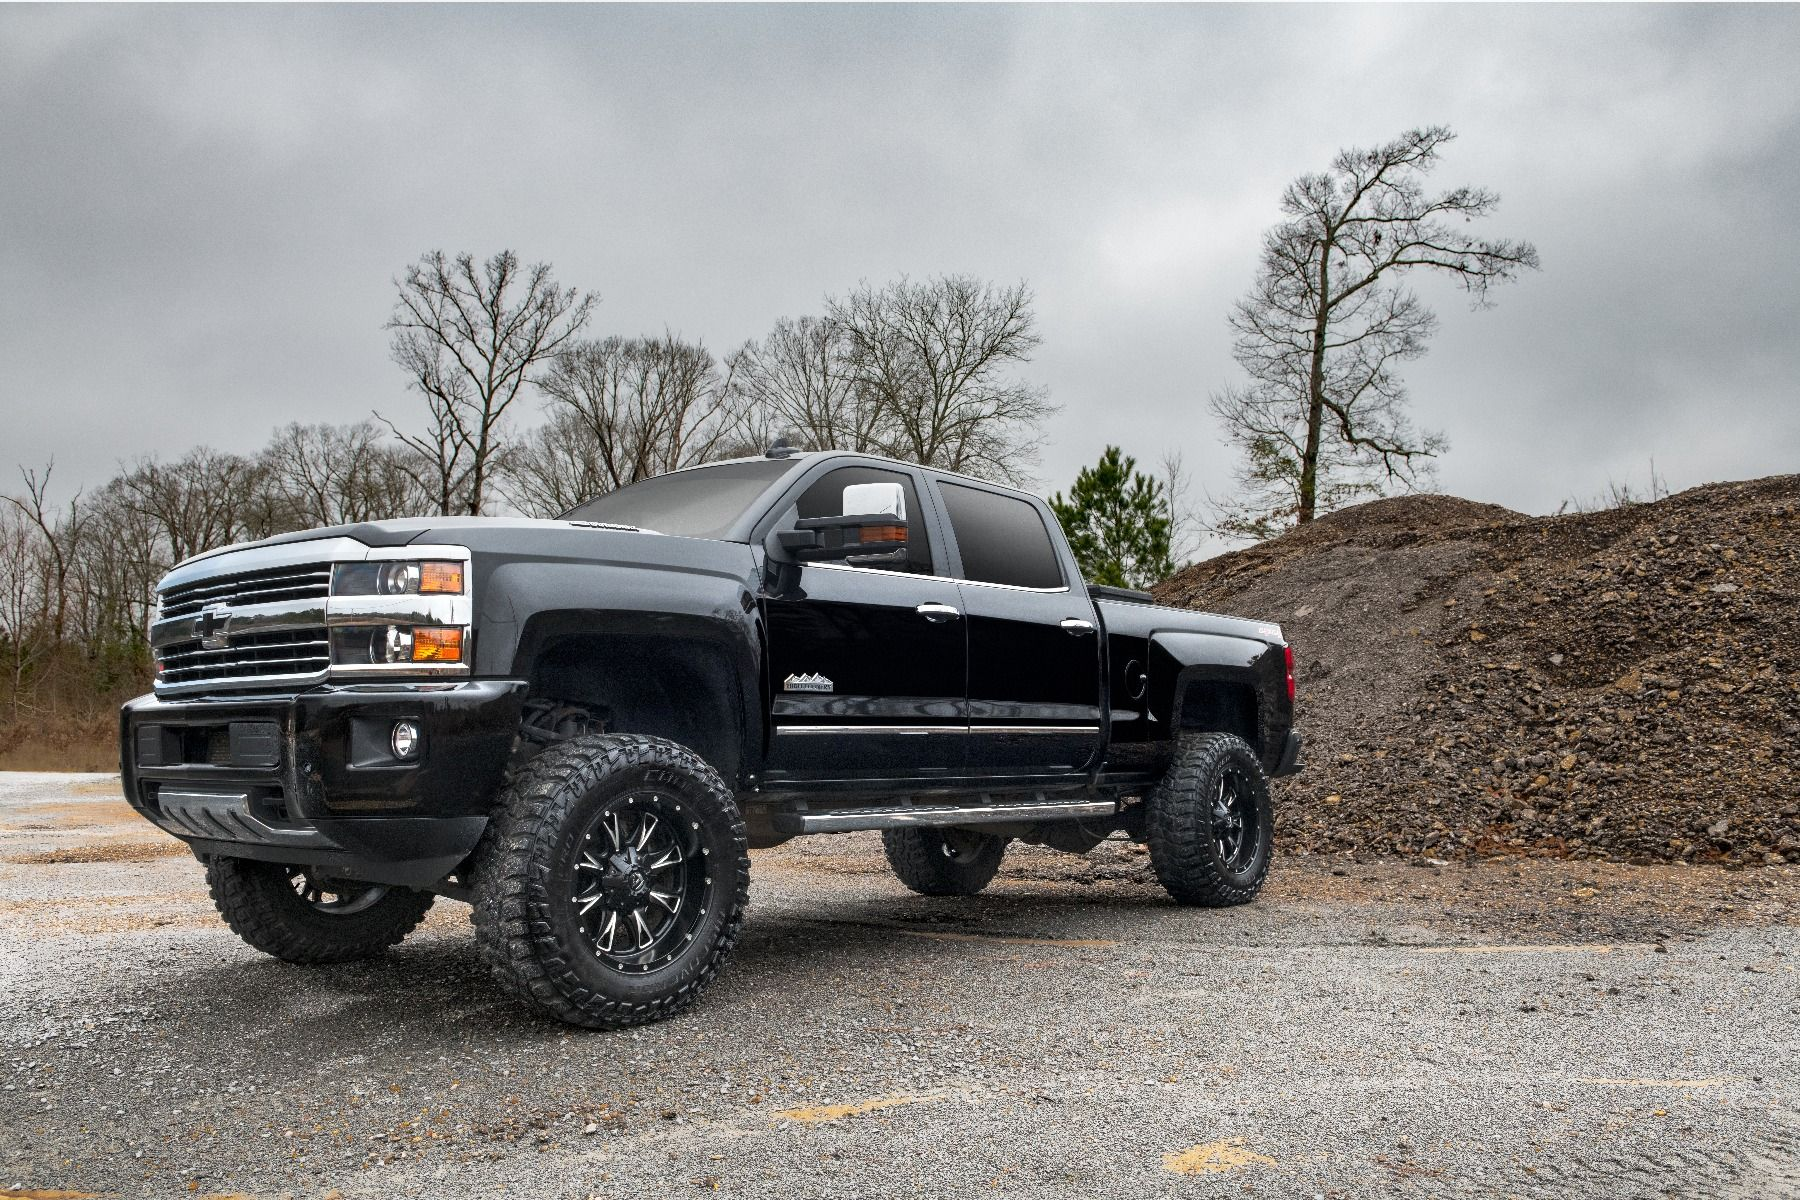 superlift 6 inch lift kit 2011 2018 chevy silverado and gmc sierra 2500hd or  [ 1800 x 1200 Pixel ]